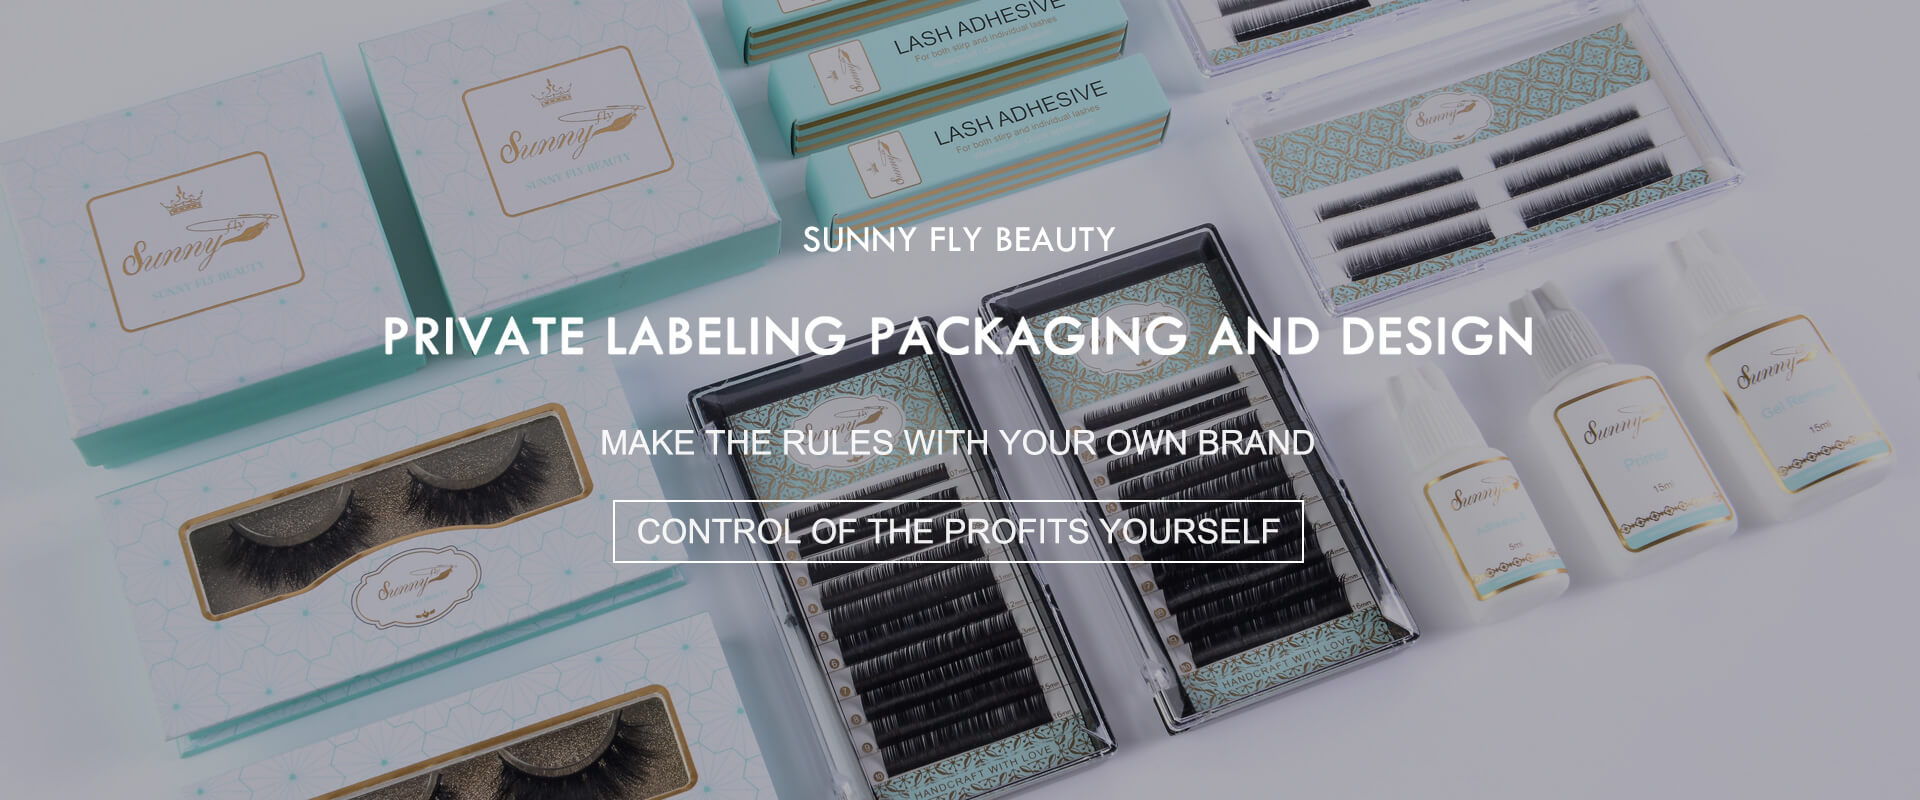 private labeling packaging and design